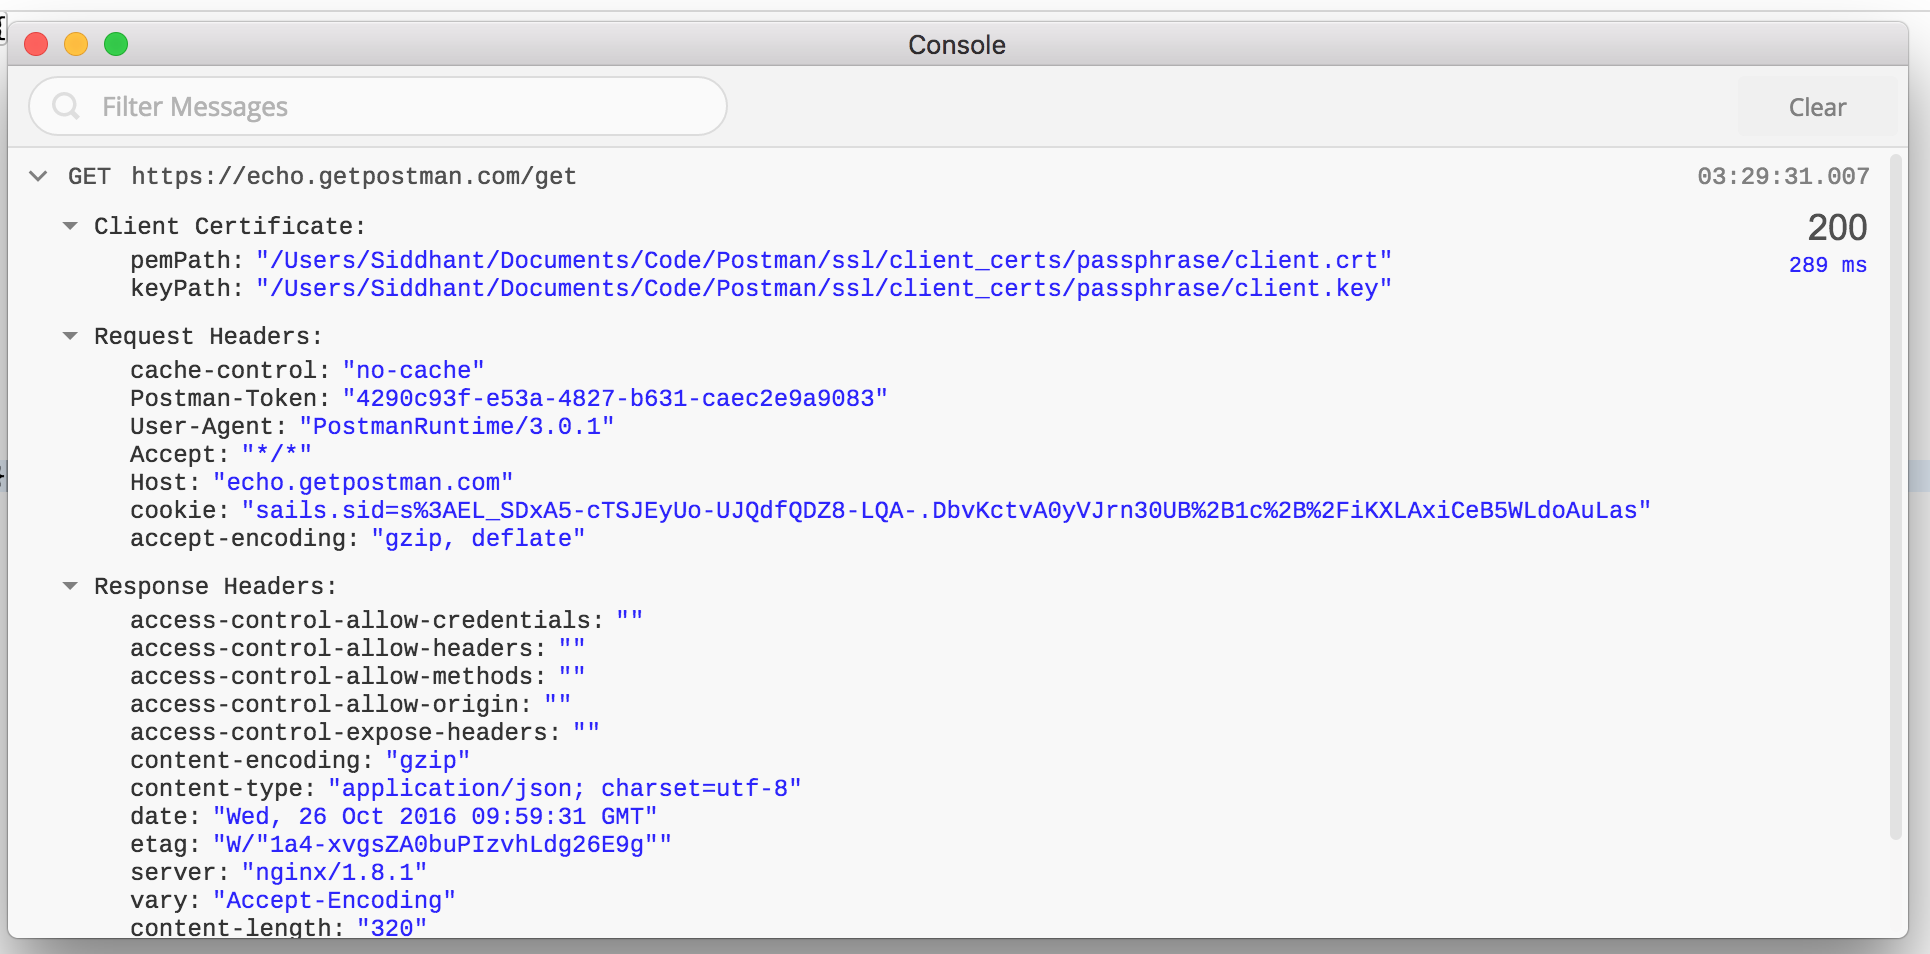 Postman console view